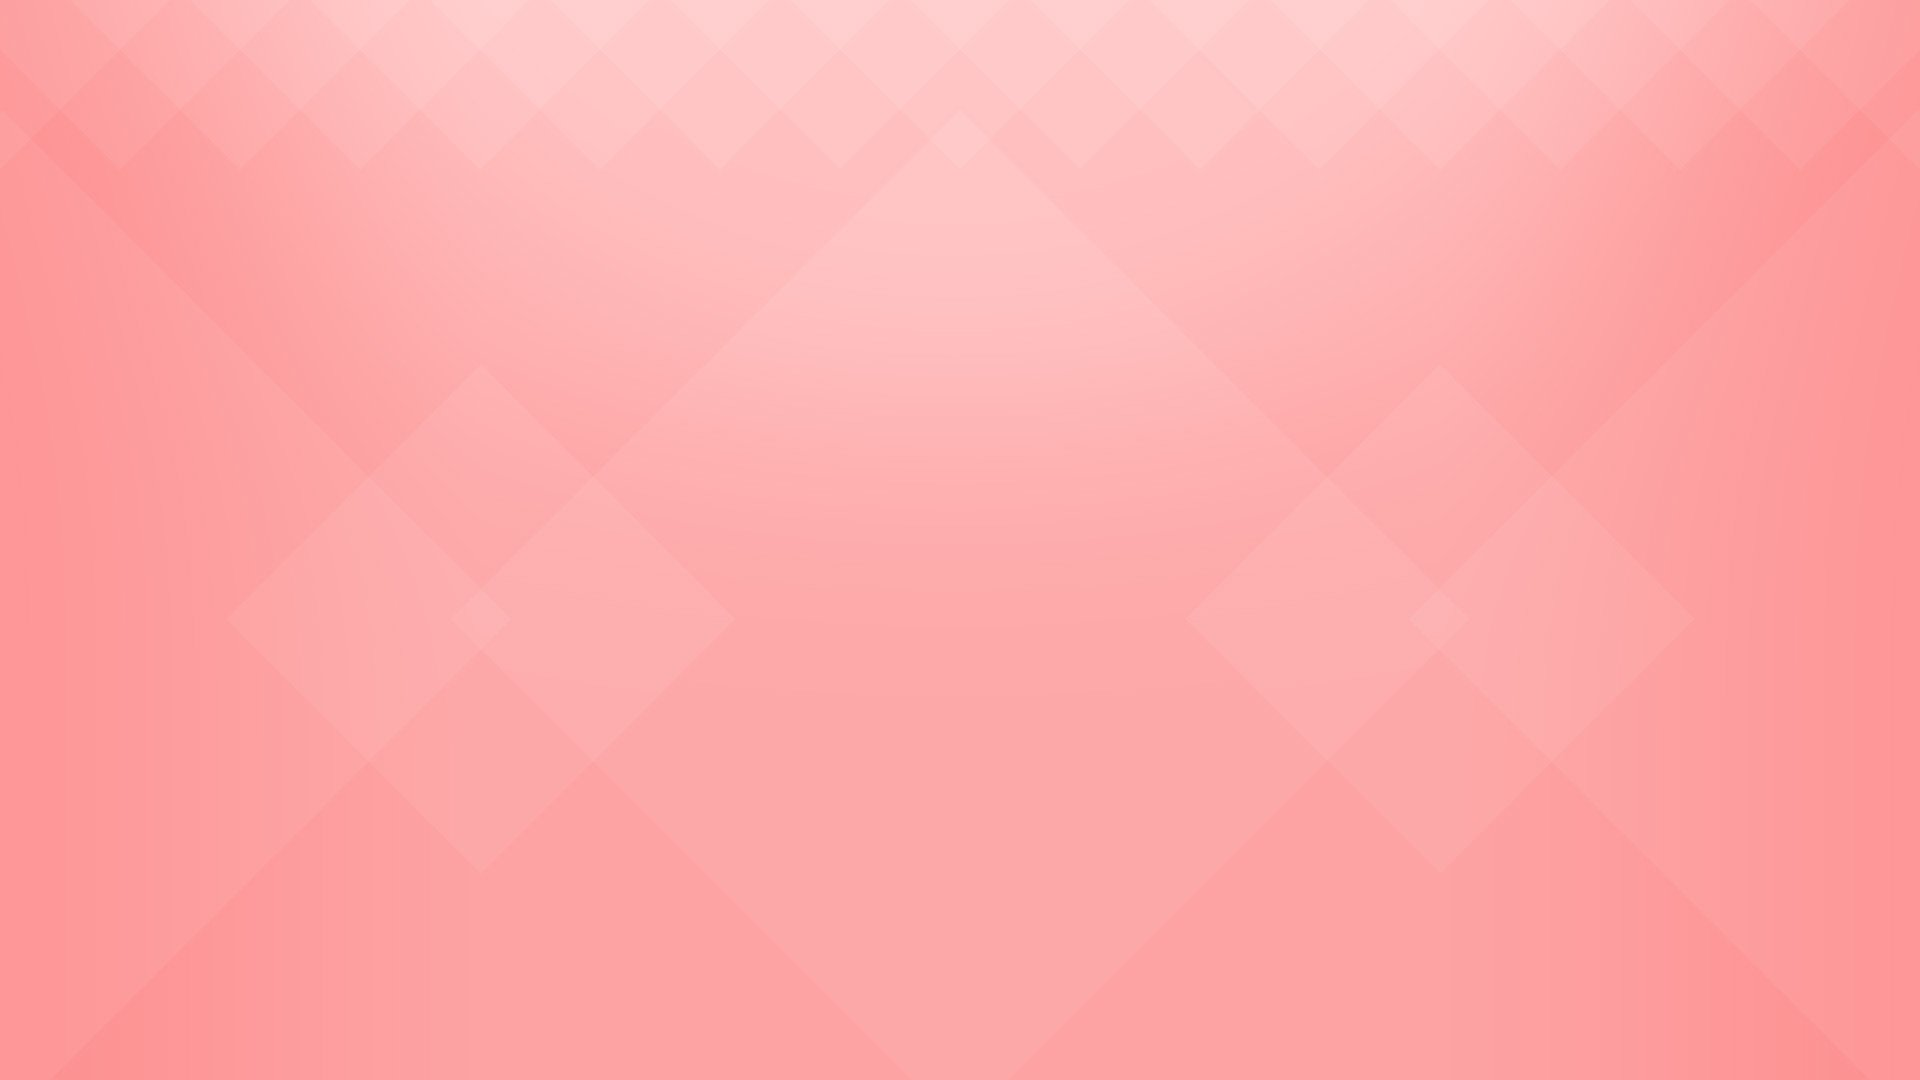 Coral Color Background Design Rustic Compact